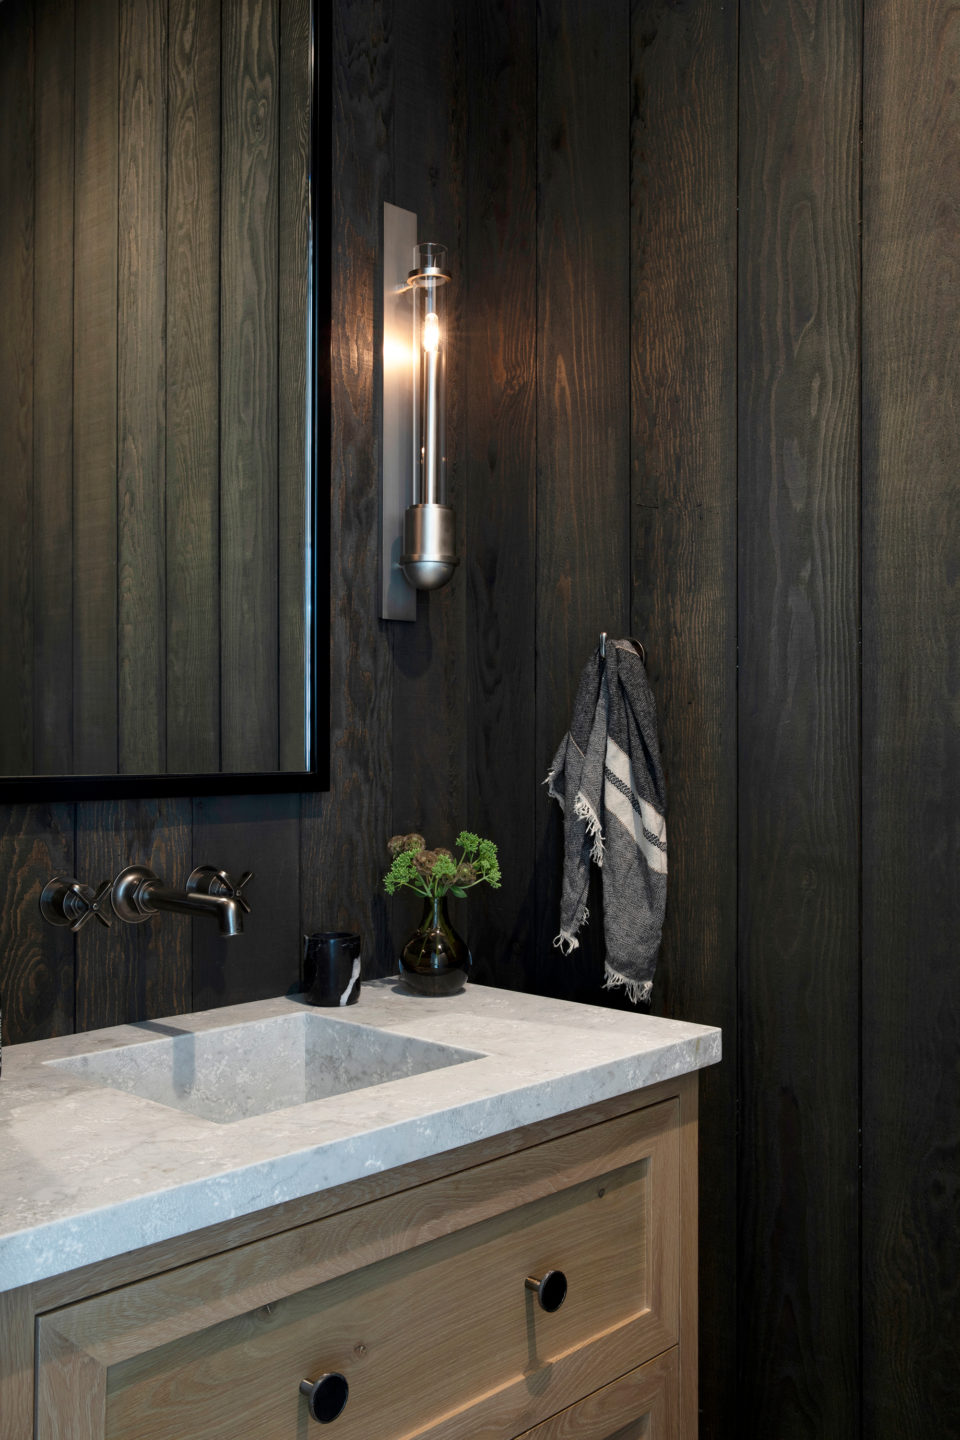 Jennifer_robins_interiors_projects_pacific_heights_portola_valley_bathroom_sink_counter_detail_Portola_24_HR